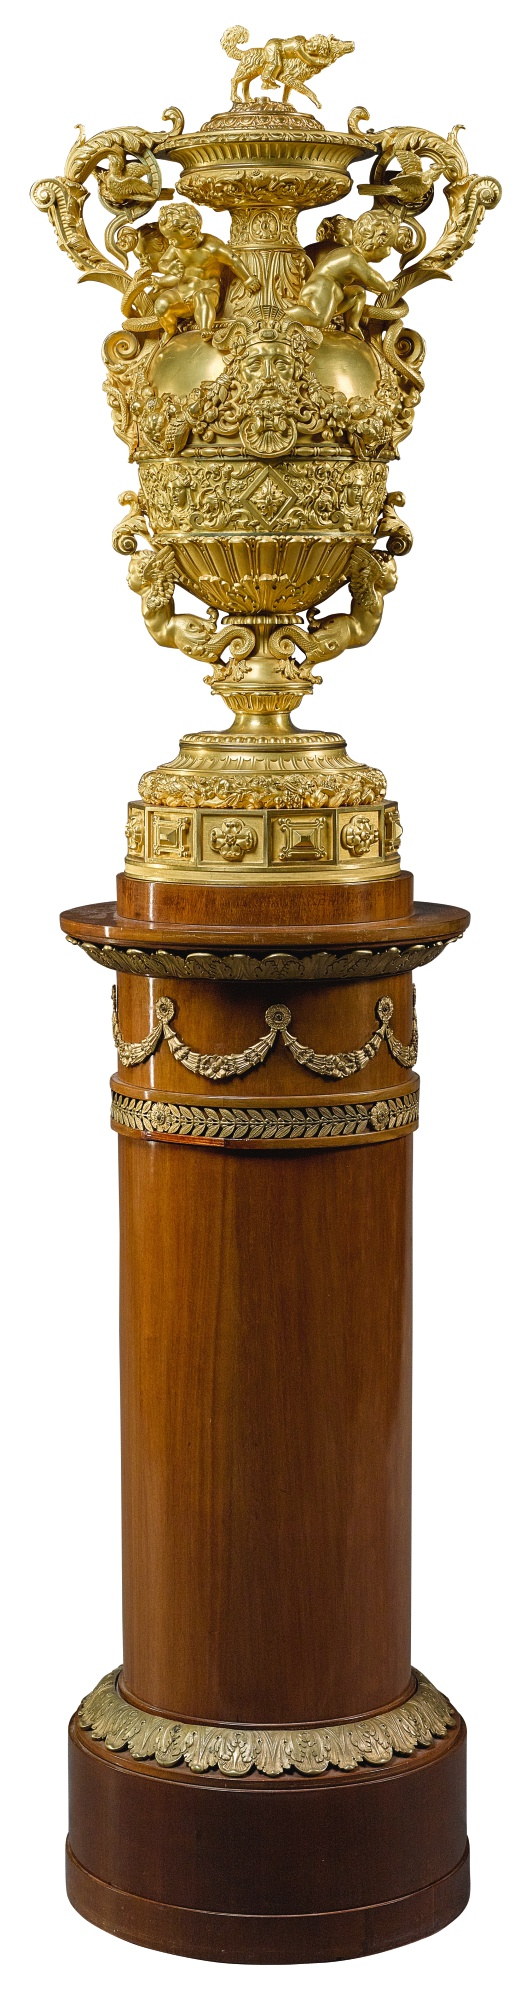 View full screen - View 1 of Lot 160. A LOUIS-PHILIPPE GILT-BRONZE MOUNTED COVERED VASE, CIRCA 1840, BY THOMIRE & CIE.